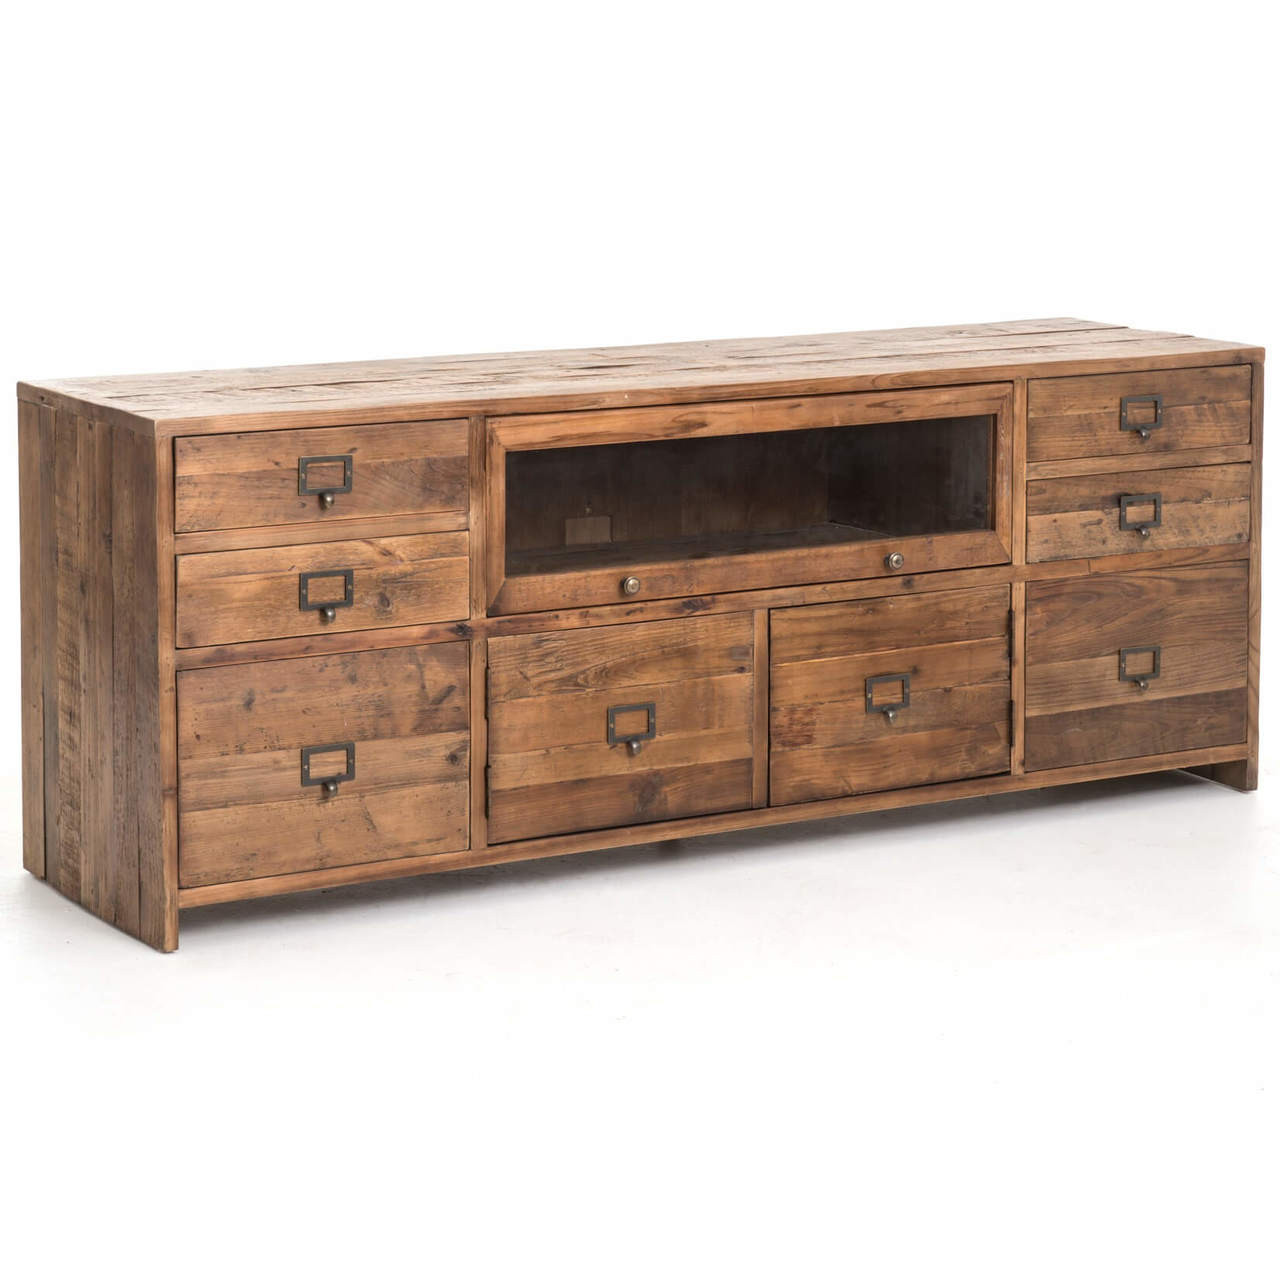 Charmant Hughes Reclaimed Pine Media Console. Reclaimed Wood Media Console Table